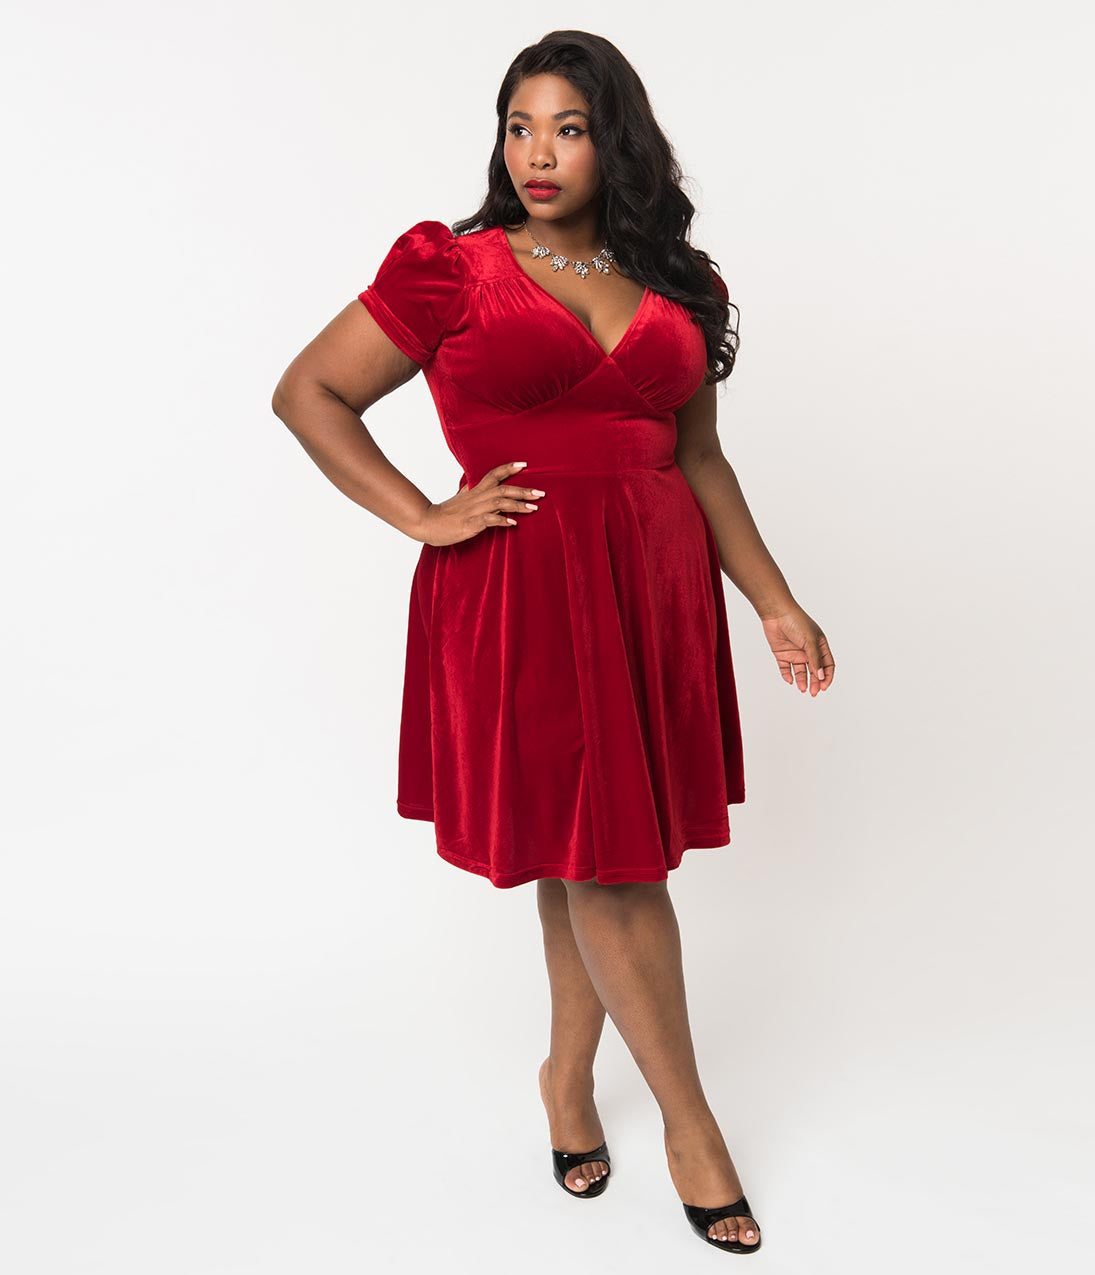 1940s Plus Size Fashion: Style Advice from 1940s to Today Hell Bunny Plus Size Red Velvet Short Sleeve Flare Holiday Dress $59.00 AT vintagedancer.com